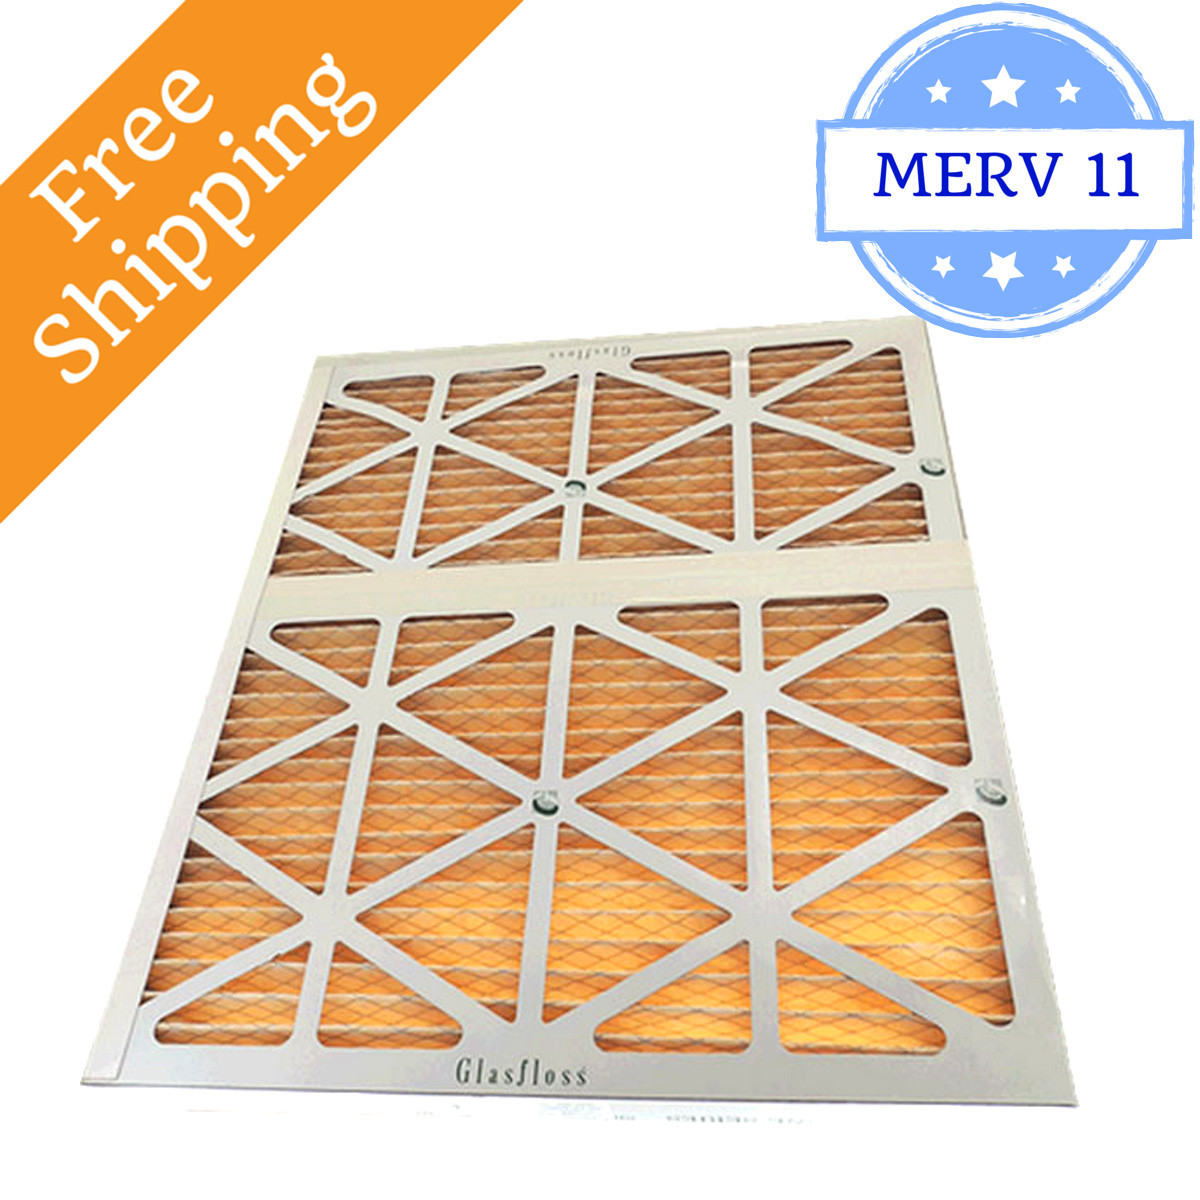 28x30x2 Air Filter Merv 11 For Geothermal Glasfloss Box